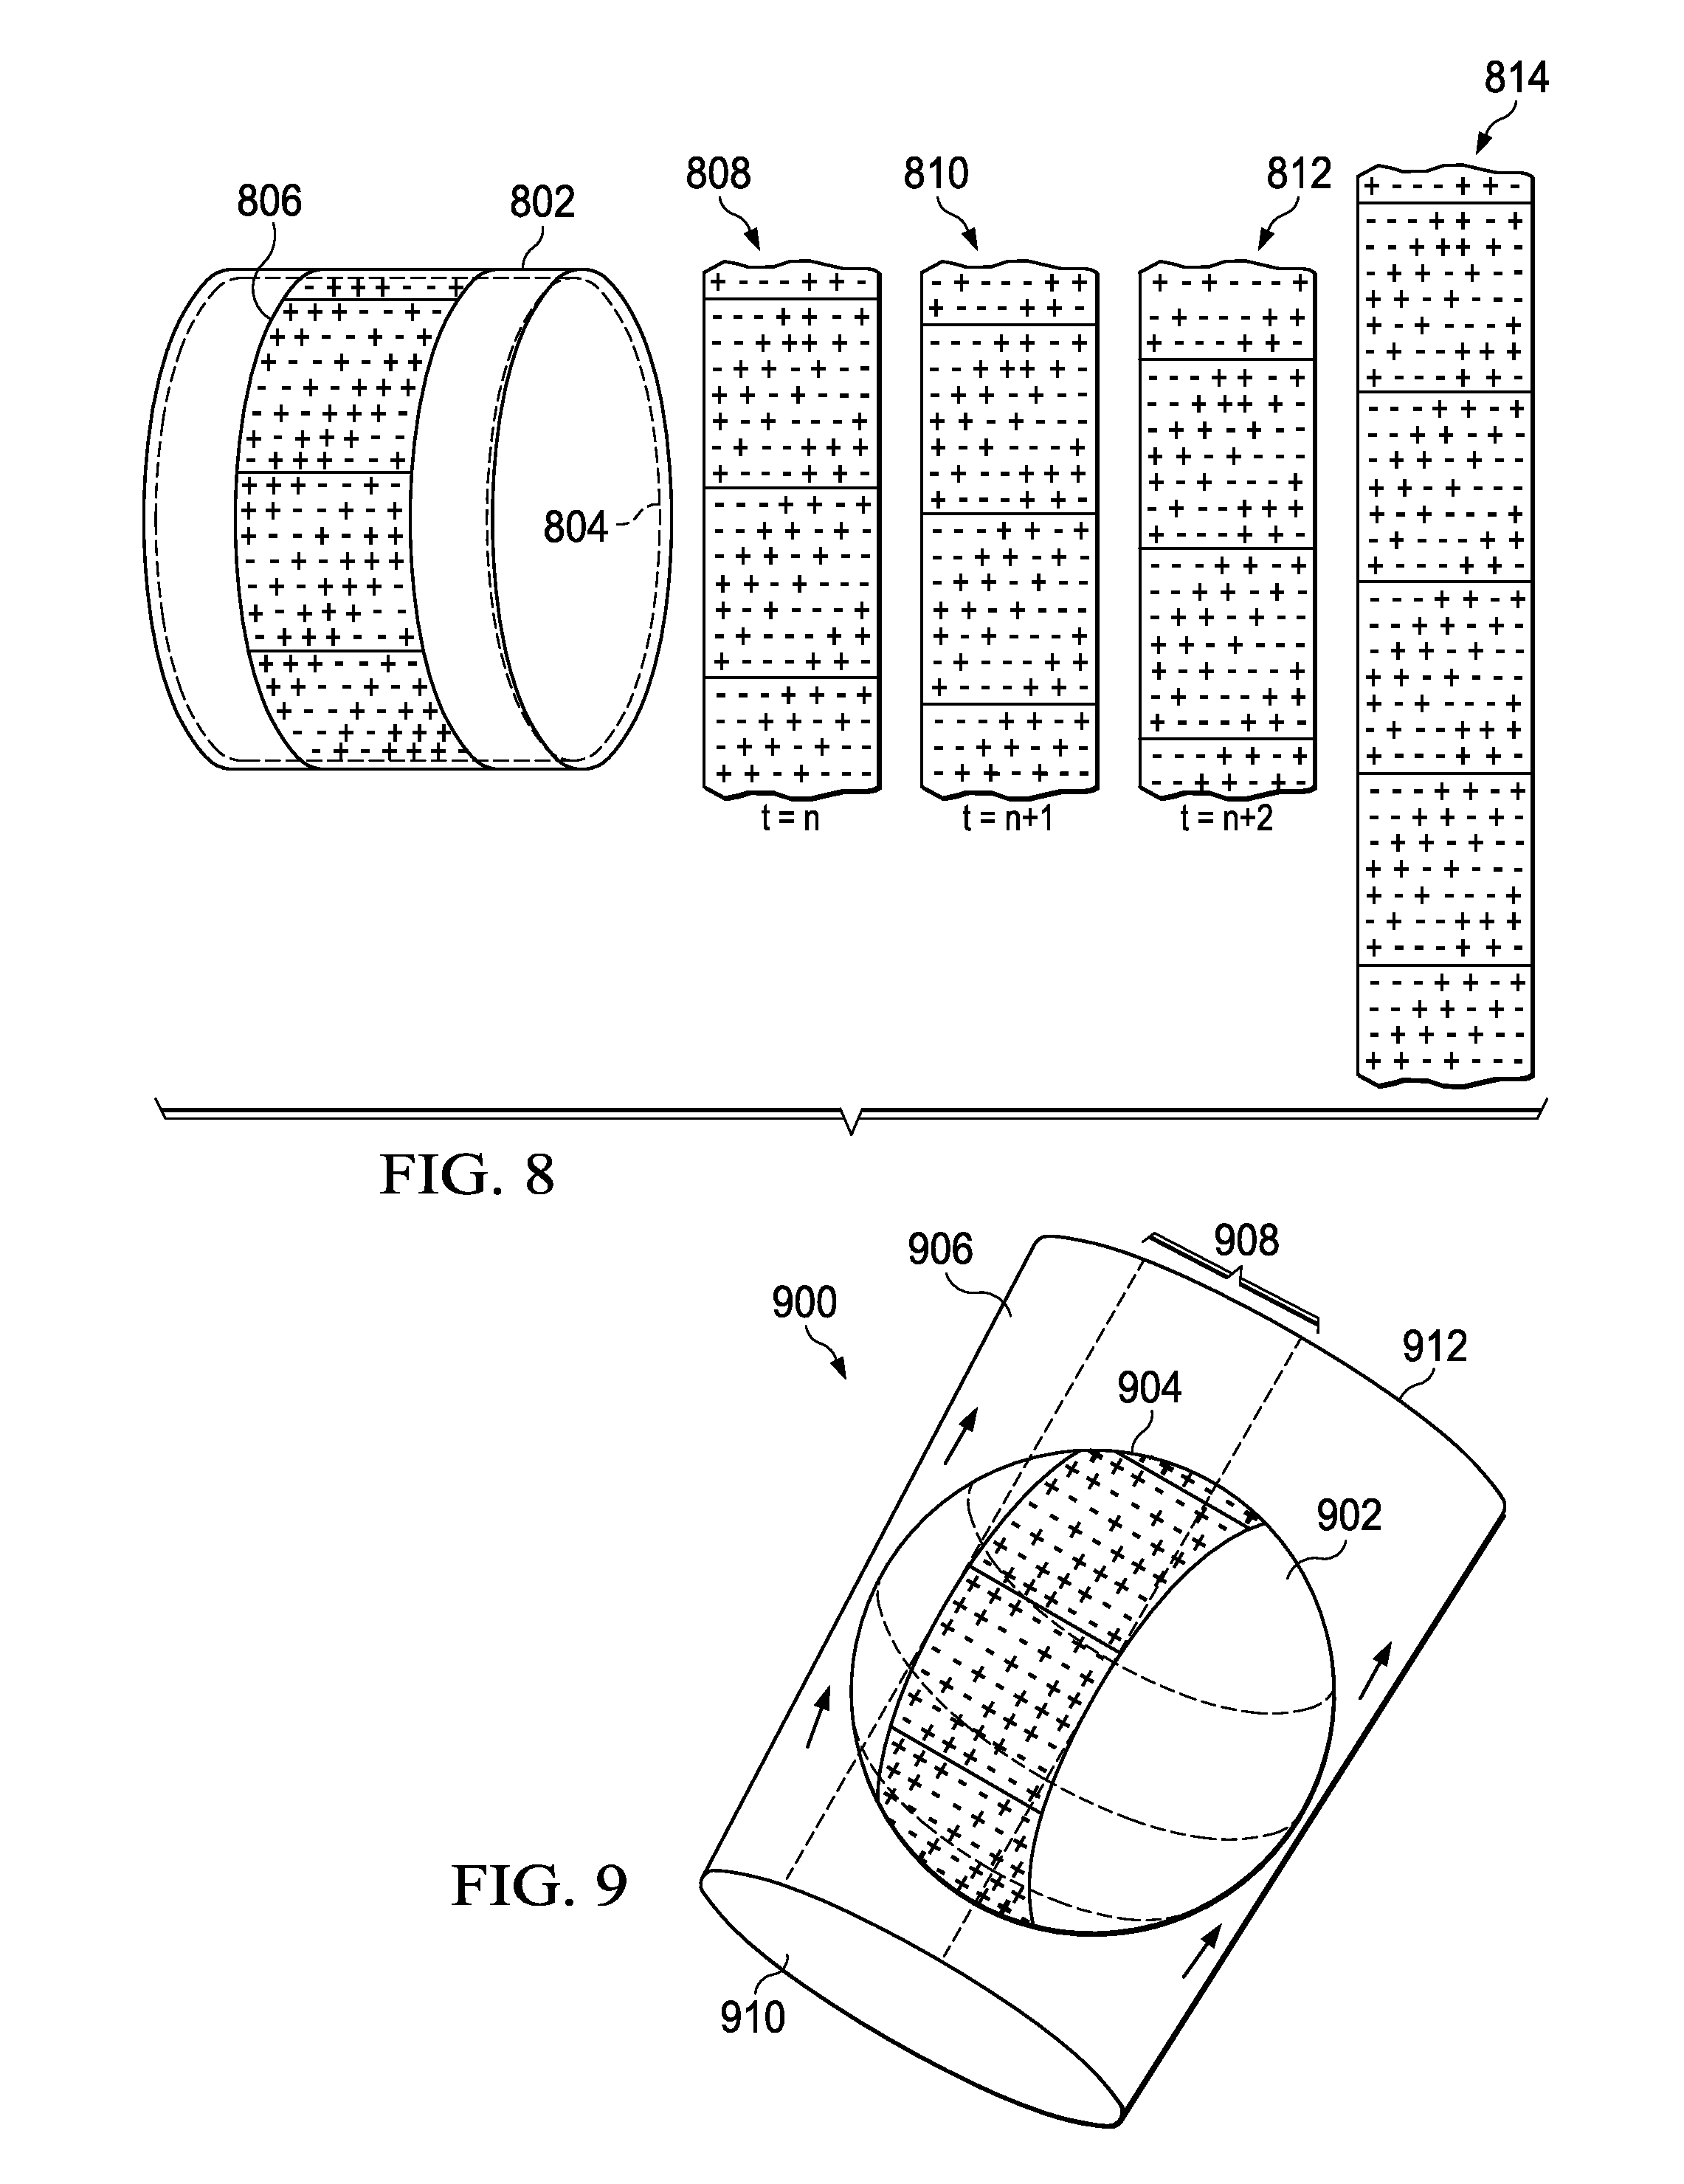 Patent Us7823300 Correlated Magnetic Footwear And Method For Using 2010 Ford Fusion Fuse Diagram Drawing